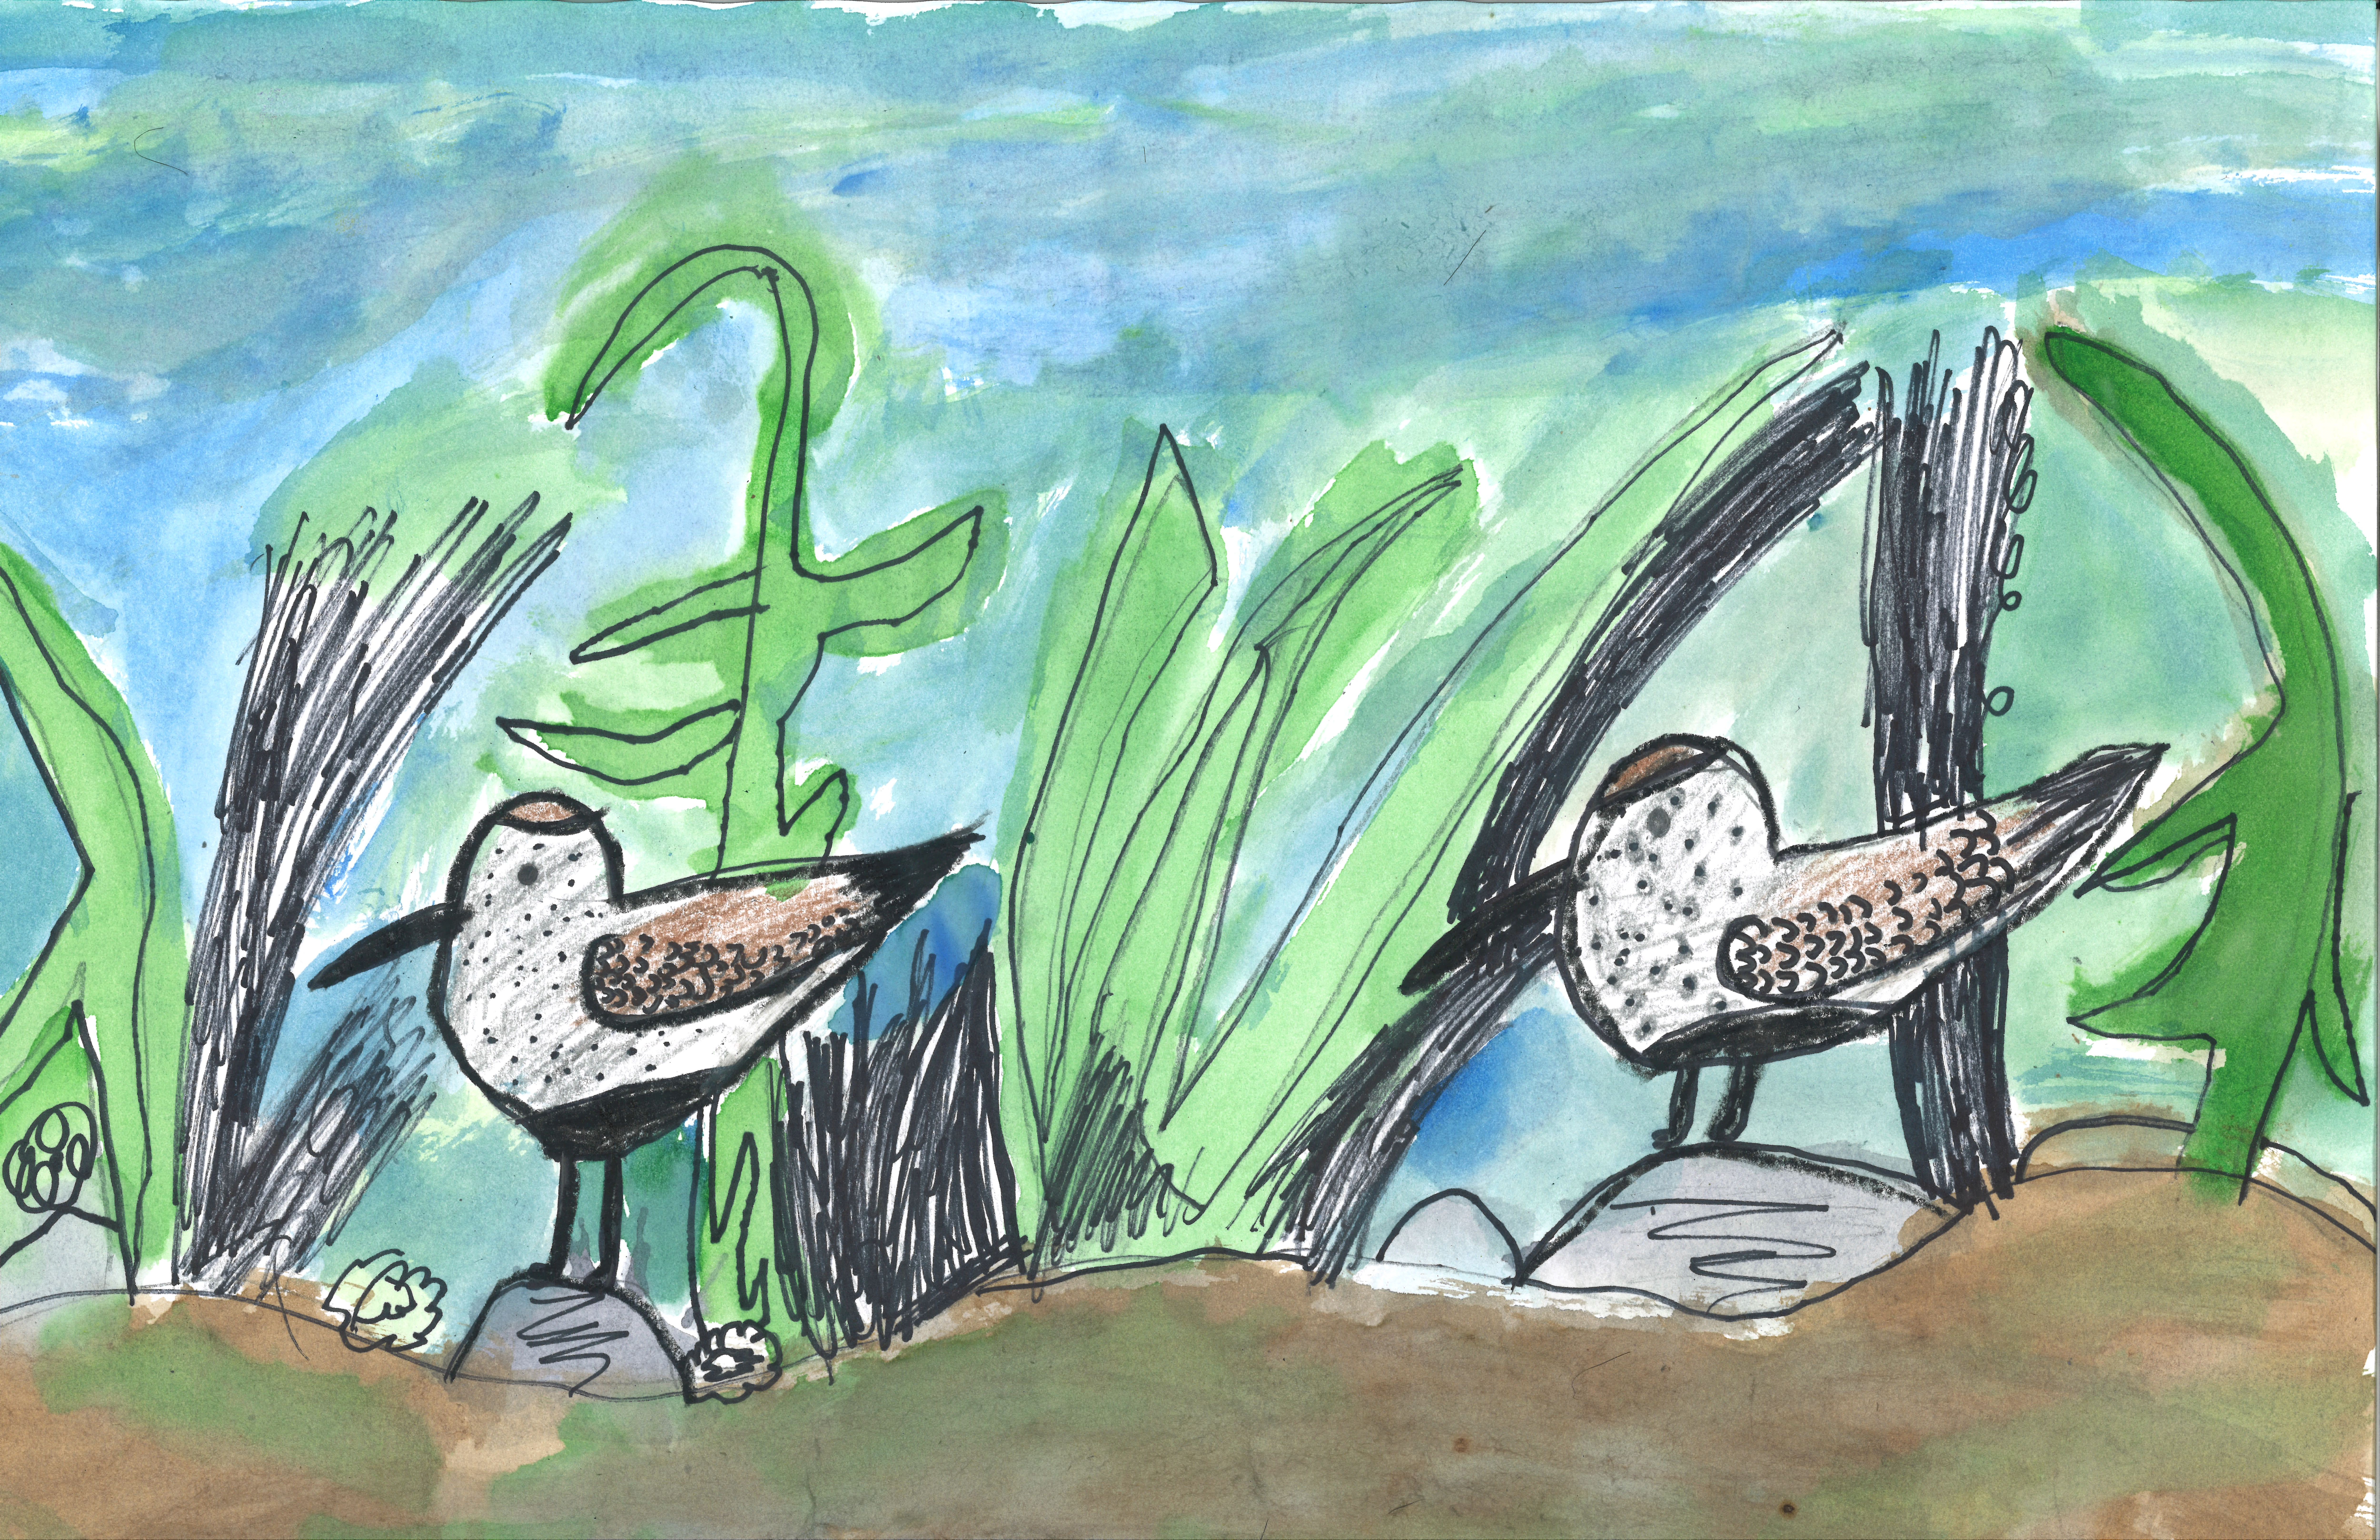 The Mudflats with Some Grass by Rylee Webster